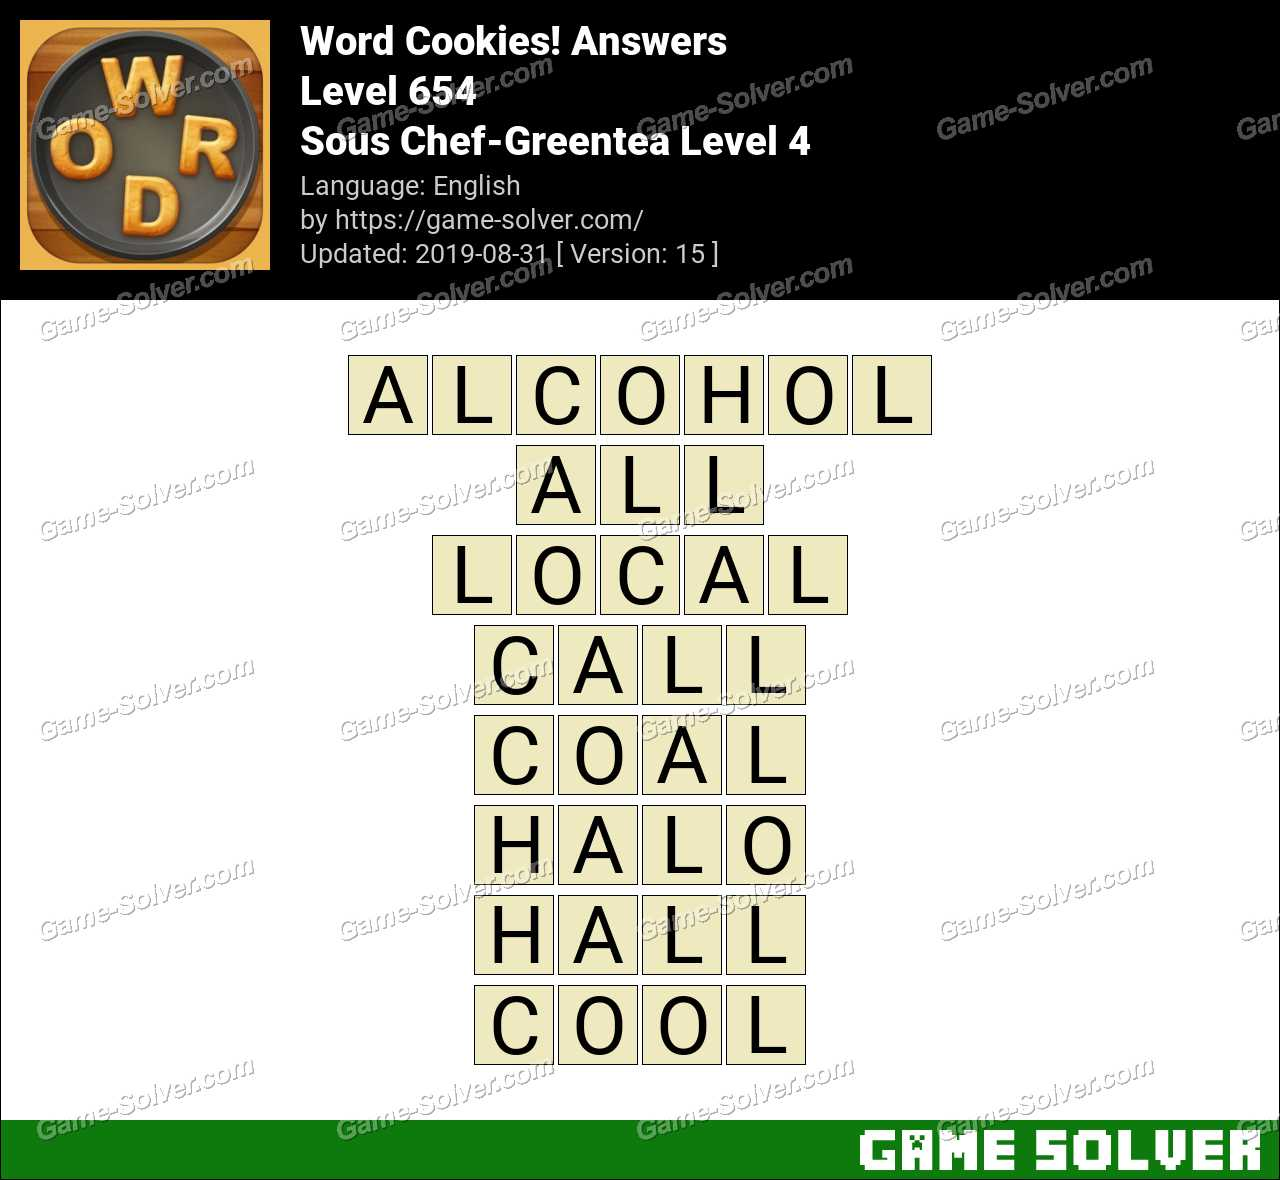 Word Cookies Sous Chef-Greentea Level 4 Answers